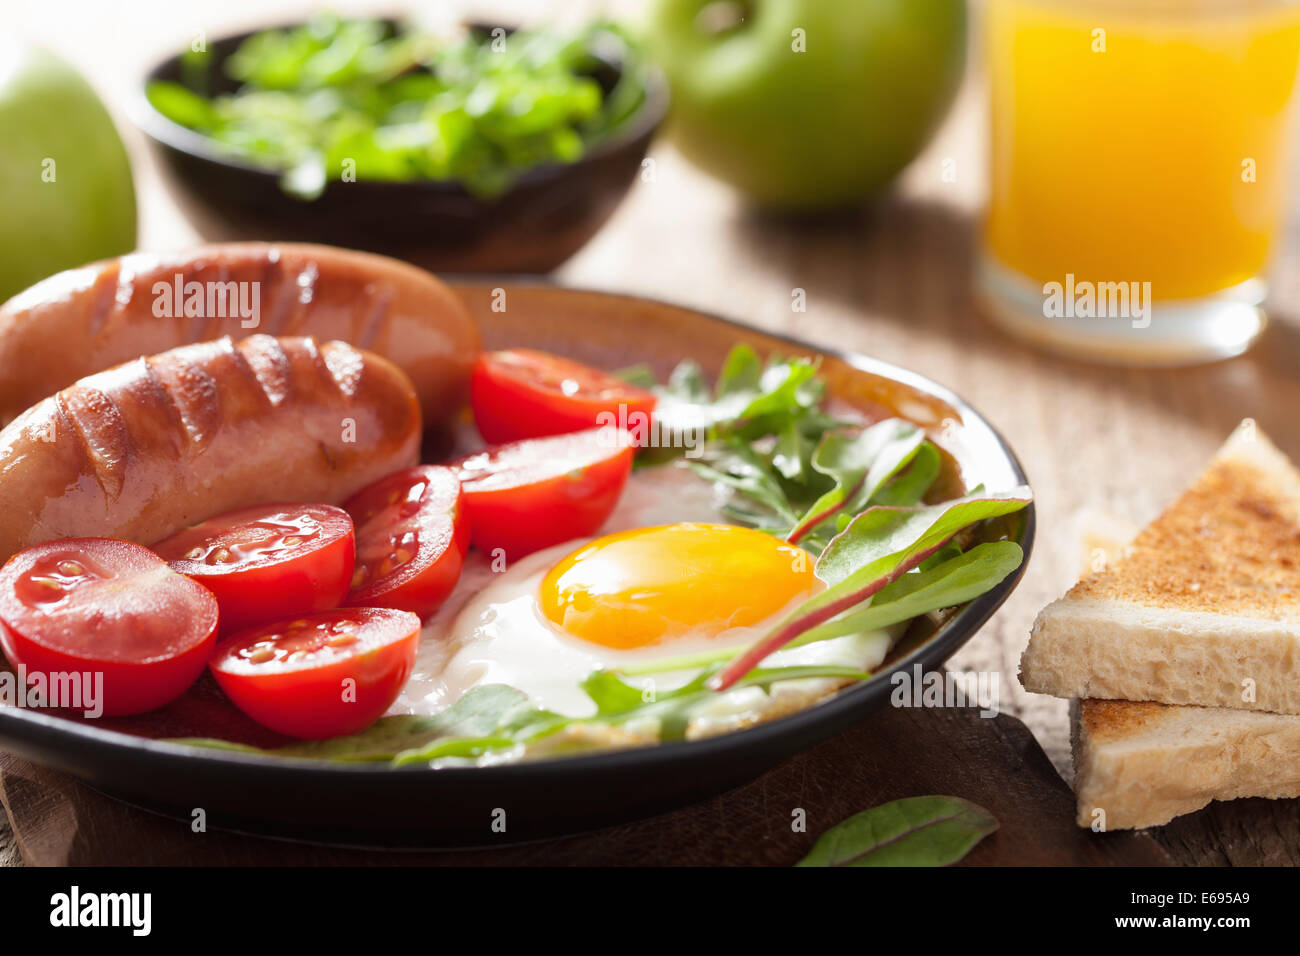 fried egg sausages tomatoes for healthy breakfast - Stock Image